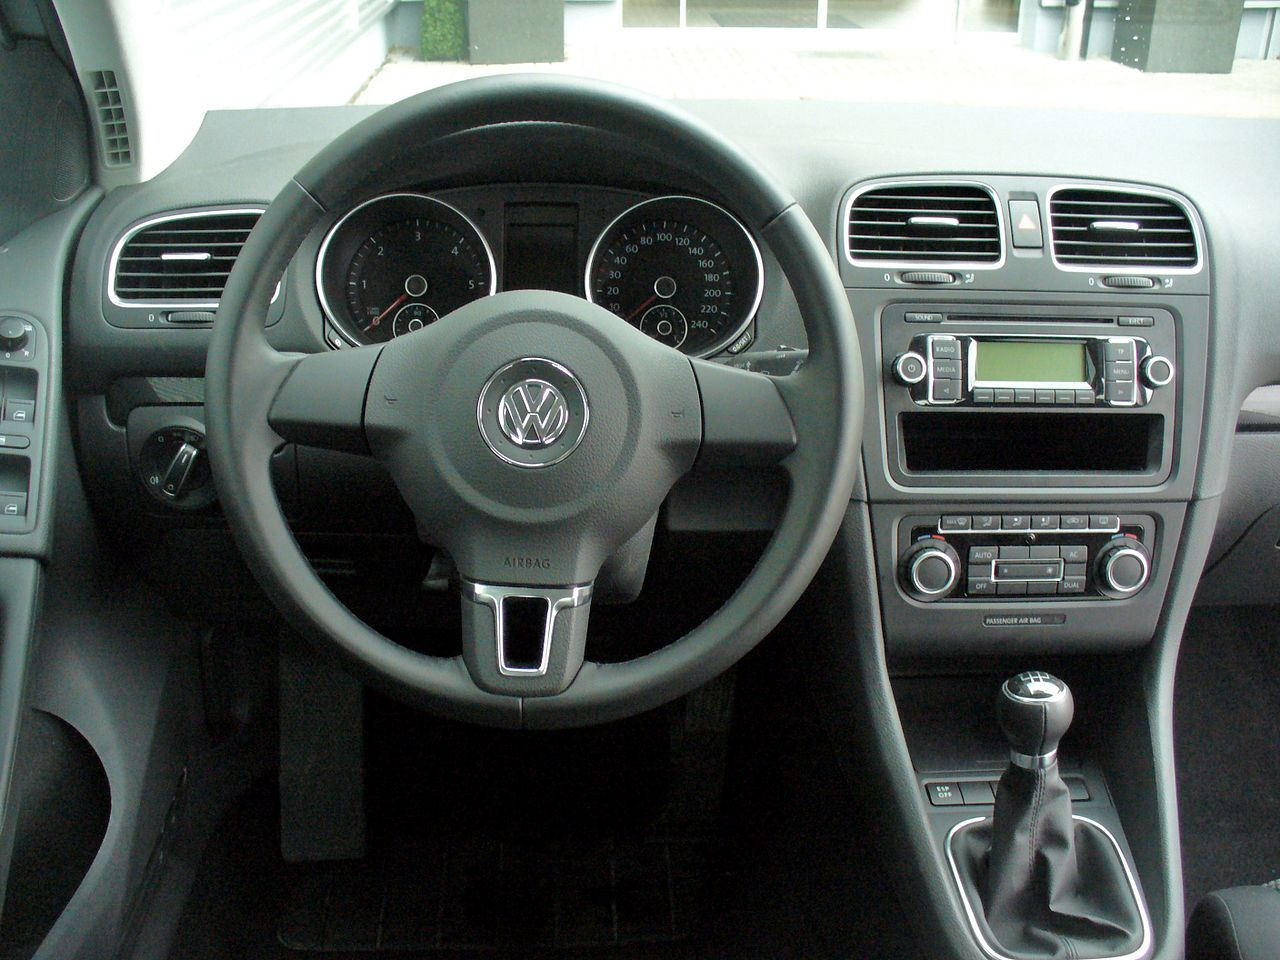 file vw golf vi 1 6 tdi comfortline reflexsilber interieur jpg wikimedia commons. Black Bedroom Furniture Sets. Home Design Ideas